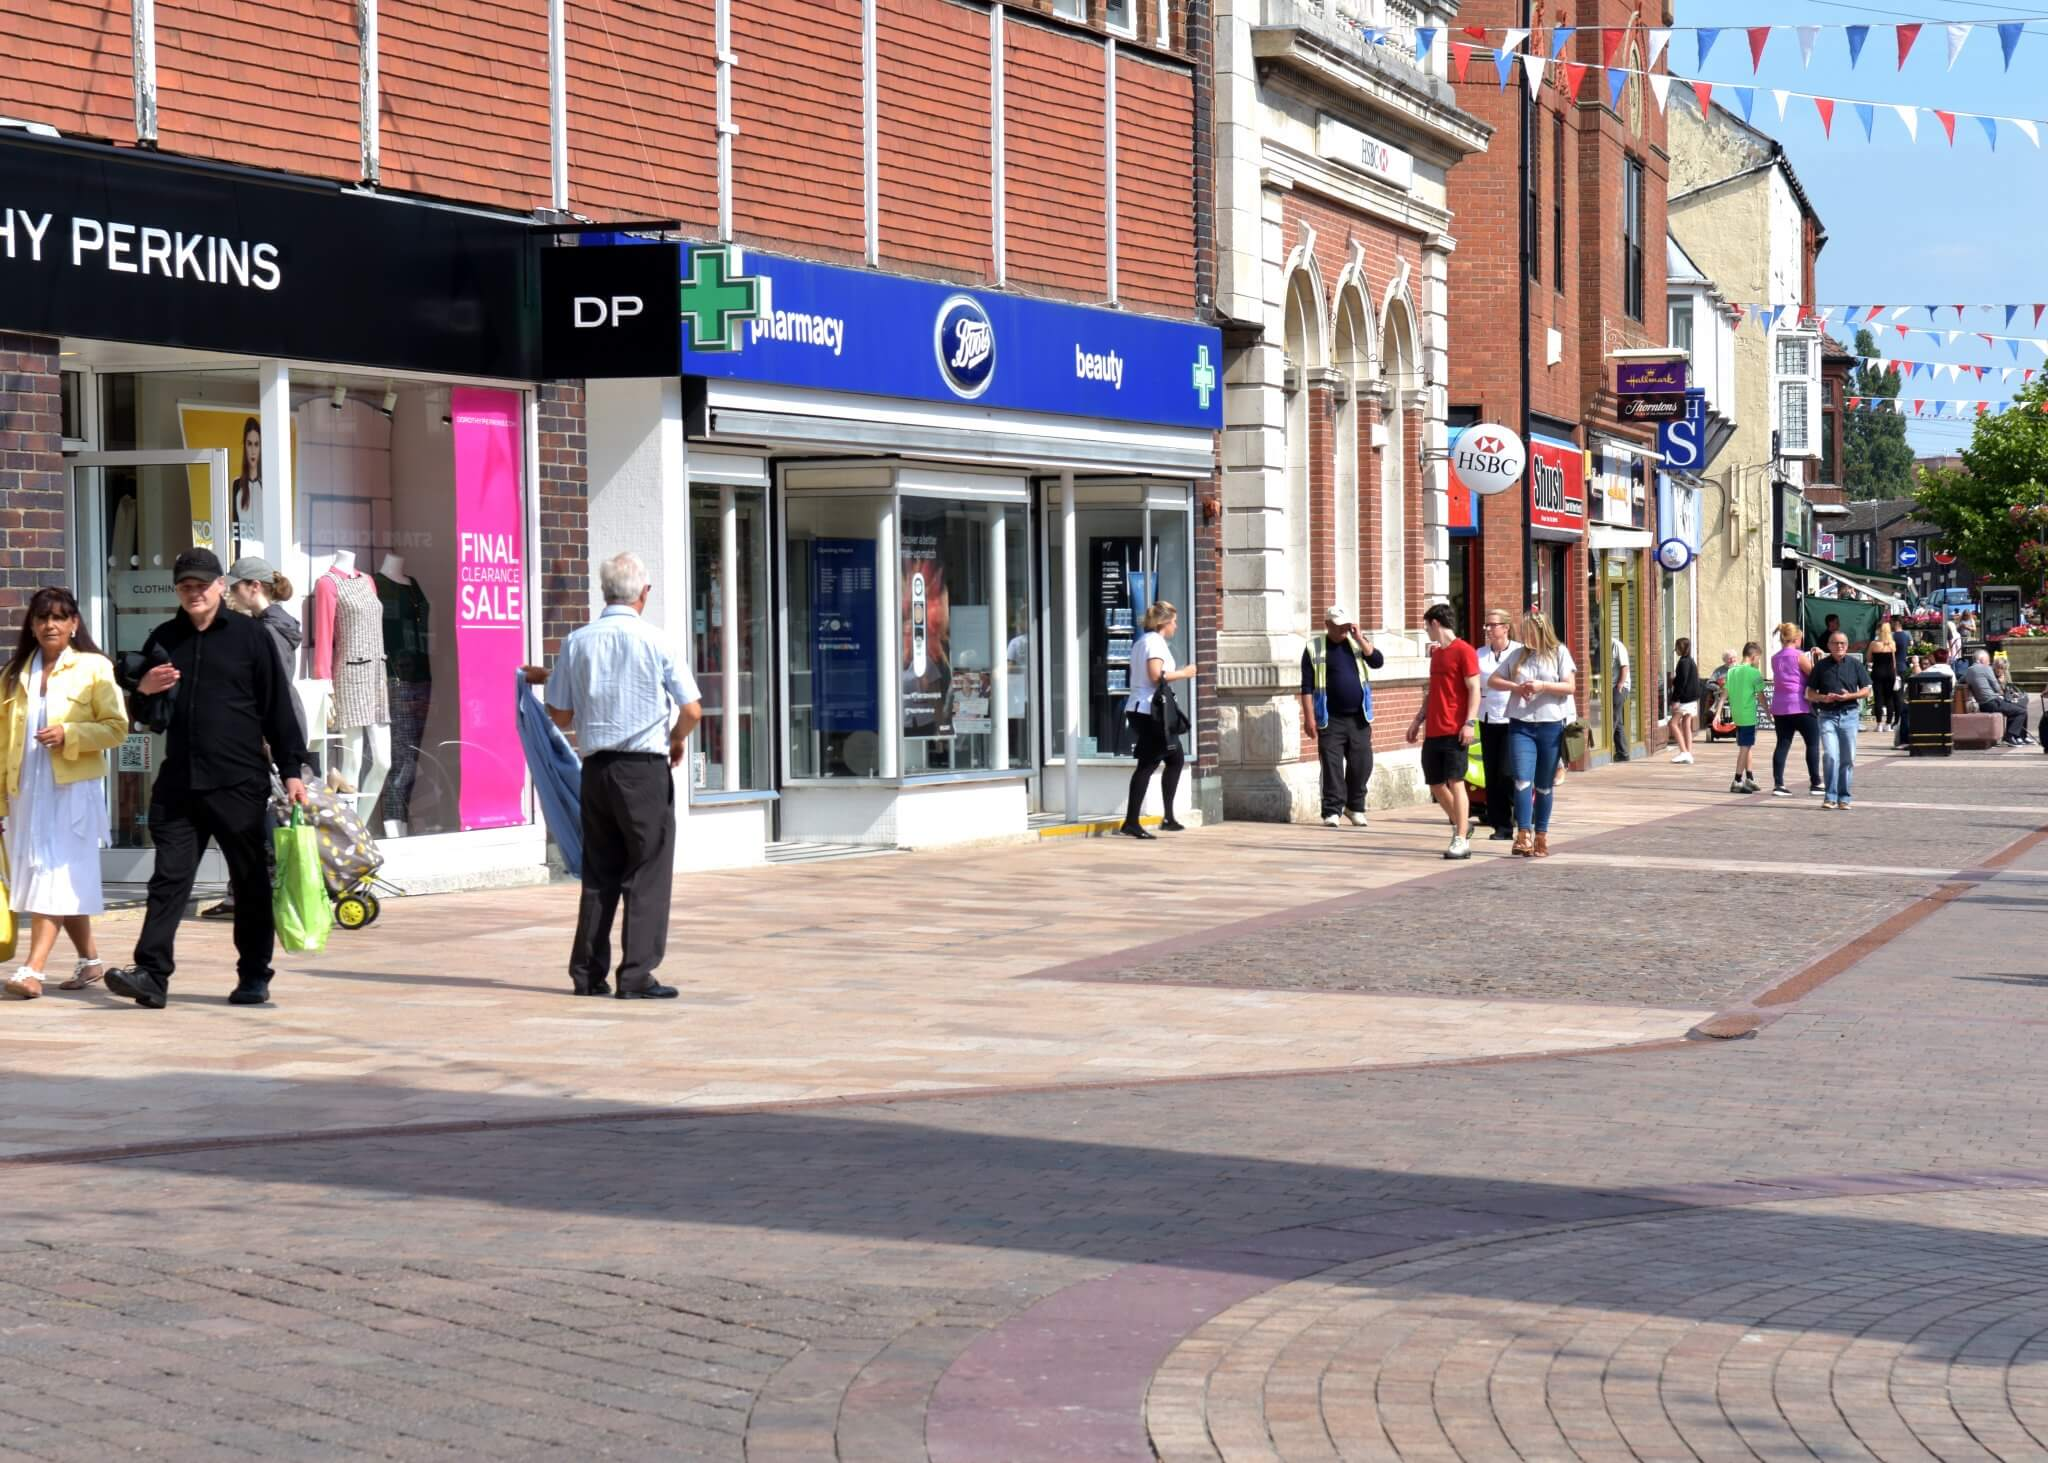 High street shops in Ormskirk town centre